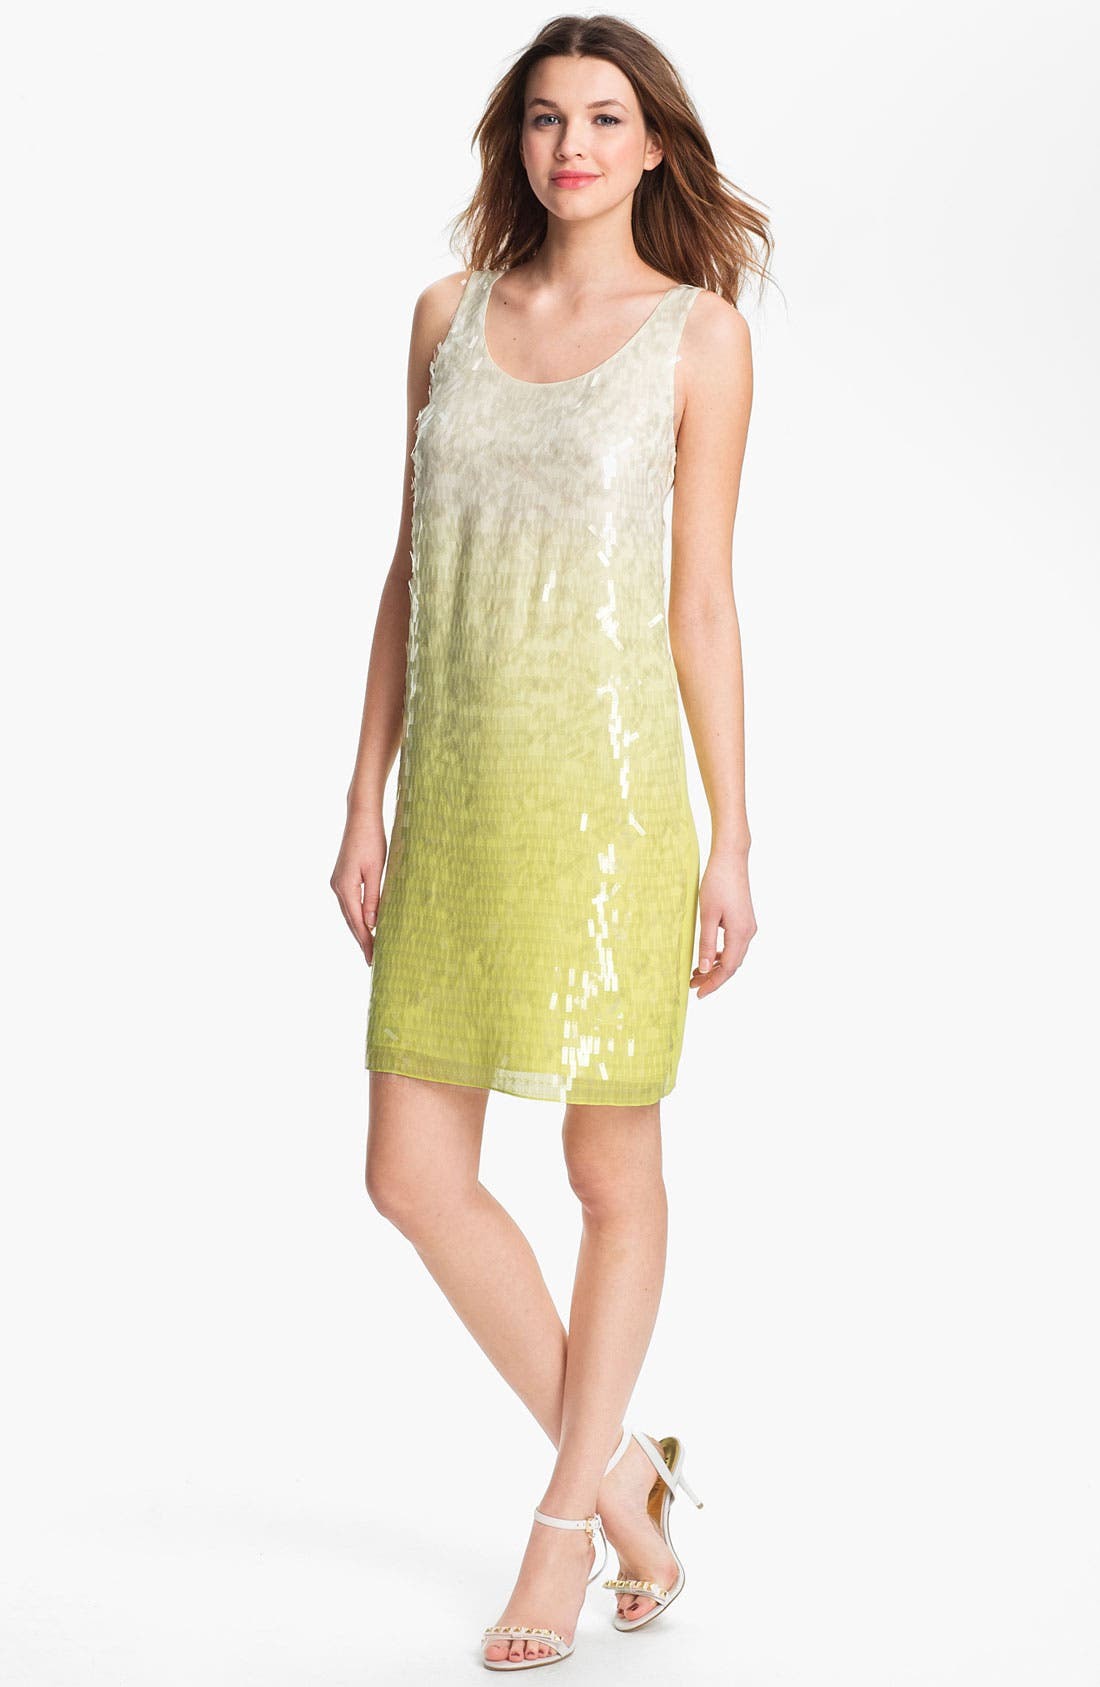 Alternate Image 1 Selected - ERIN erin fetherston Sequin Silk Tank Dress